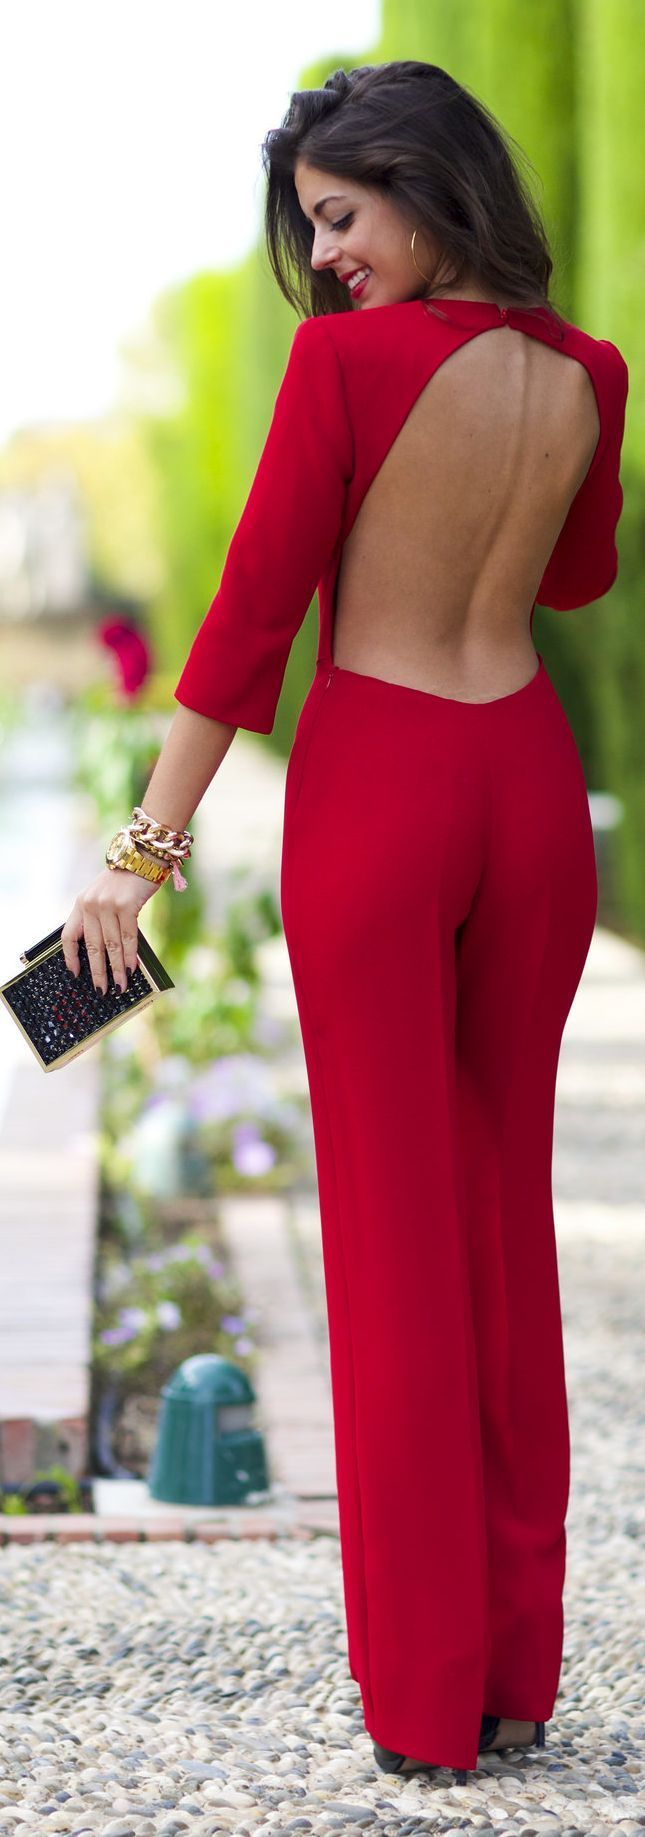 349 best My Fashion sense images on Pinterest | Work outfits ...